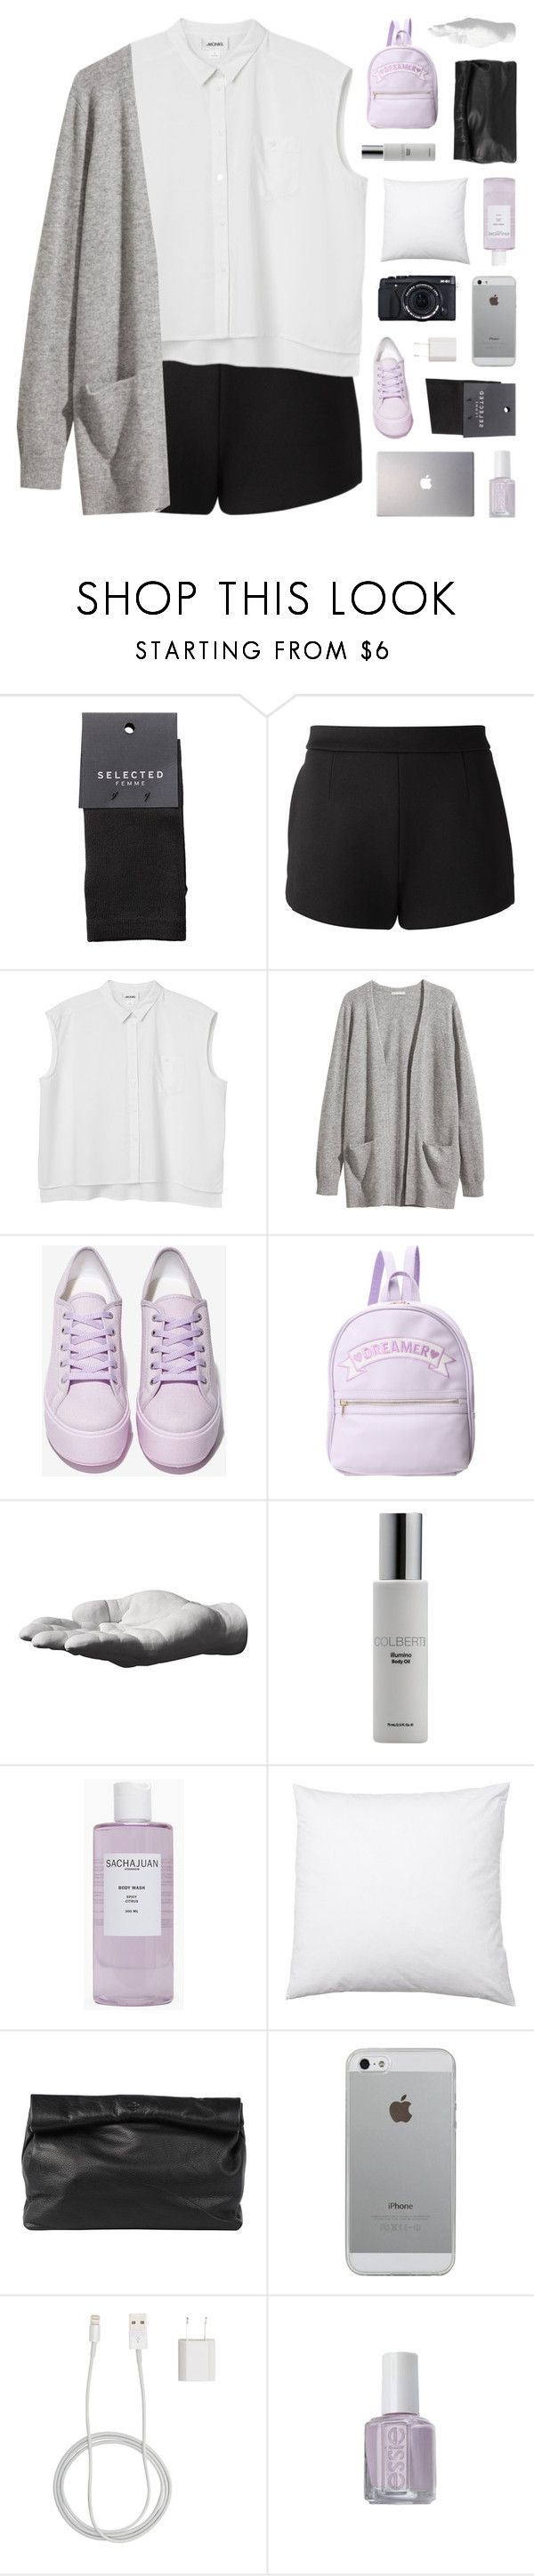 """love's not only blind but deaf"" by bosspresident ❤ liked on Polyvore featuring SELECTED, T By Alexander Wang, Monki, H&M, Shellys, Harry Allen, Colbert MD, Sachajuan, Marie Turnor and Fujifilm"